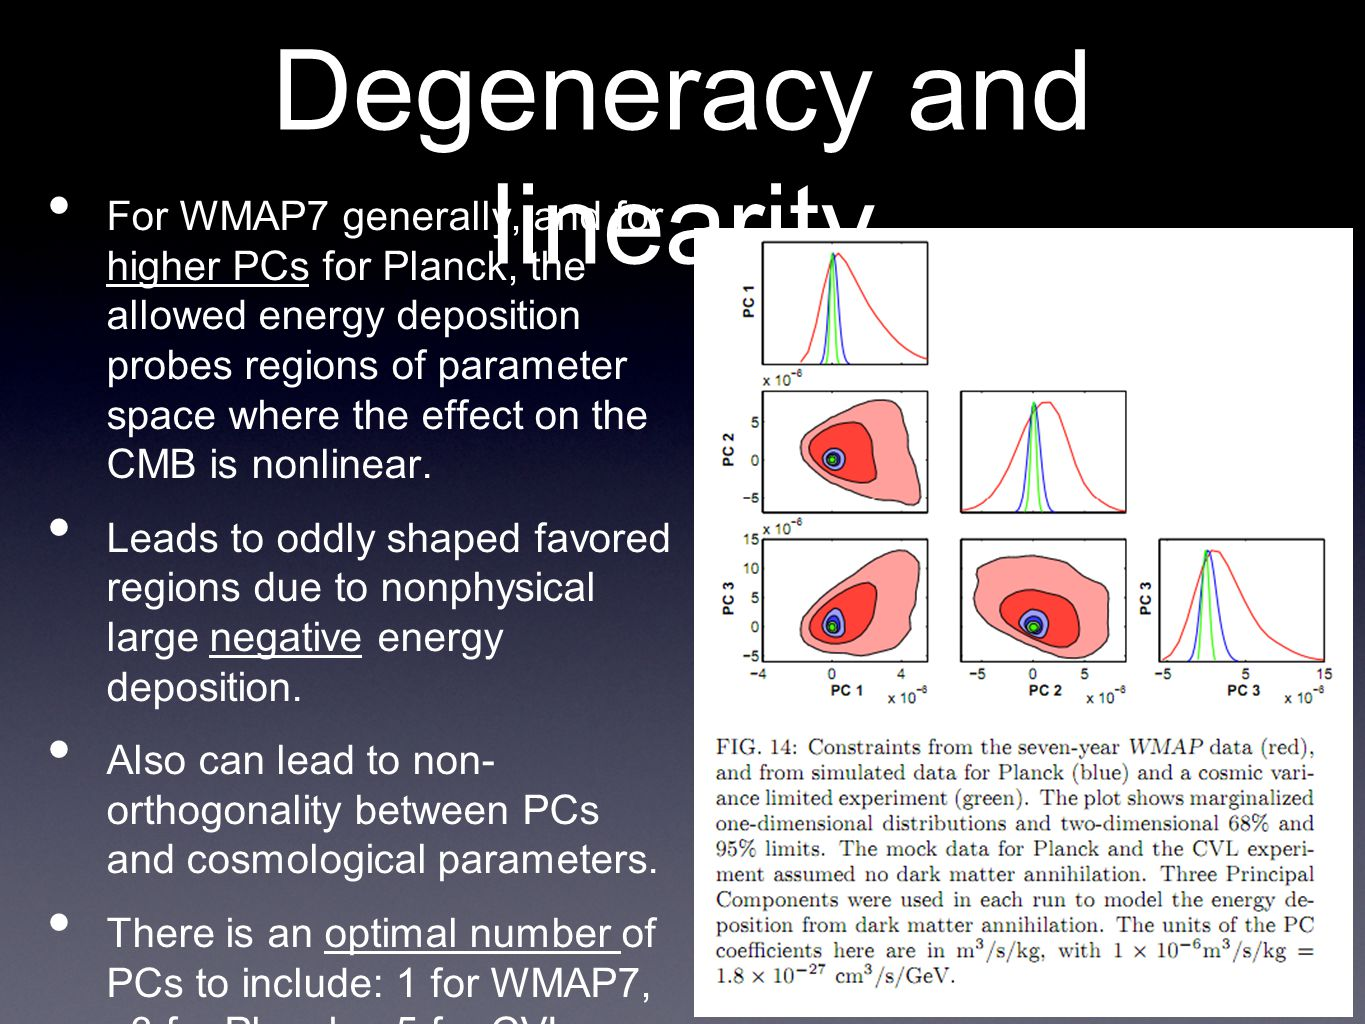 Degeneracy and linearity • For WMAP7 generally, and for higher PCs for Planck, the allowed energy deposition probes regions of parameter space where the effect on the CMB is nonlinear.